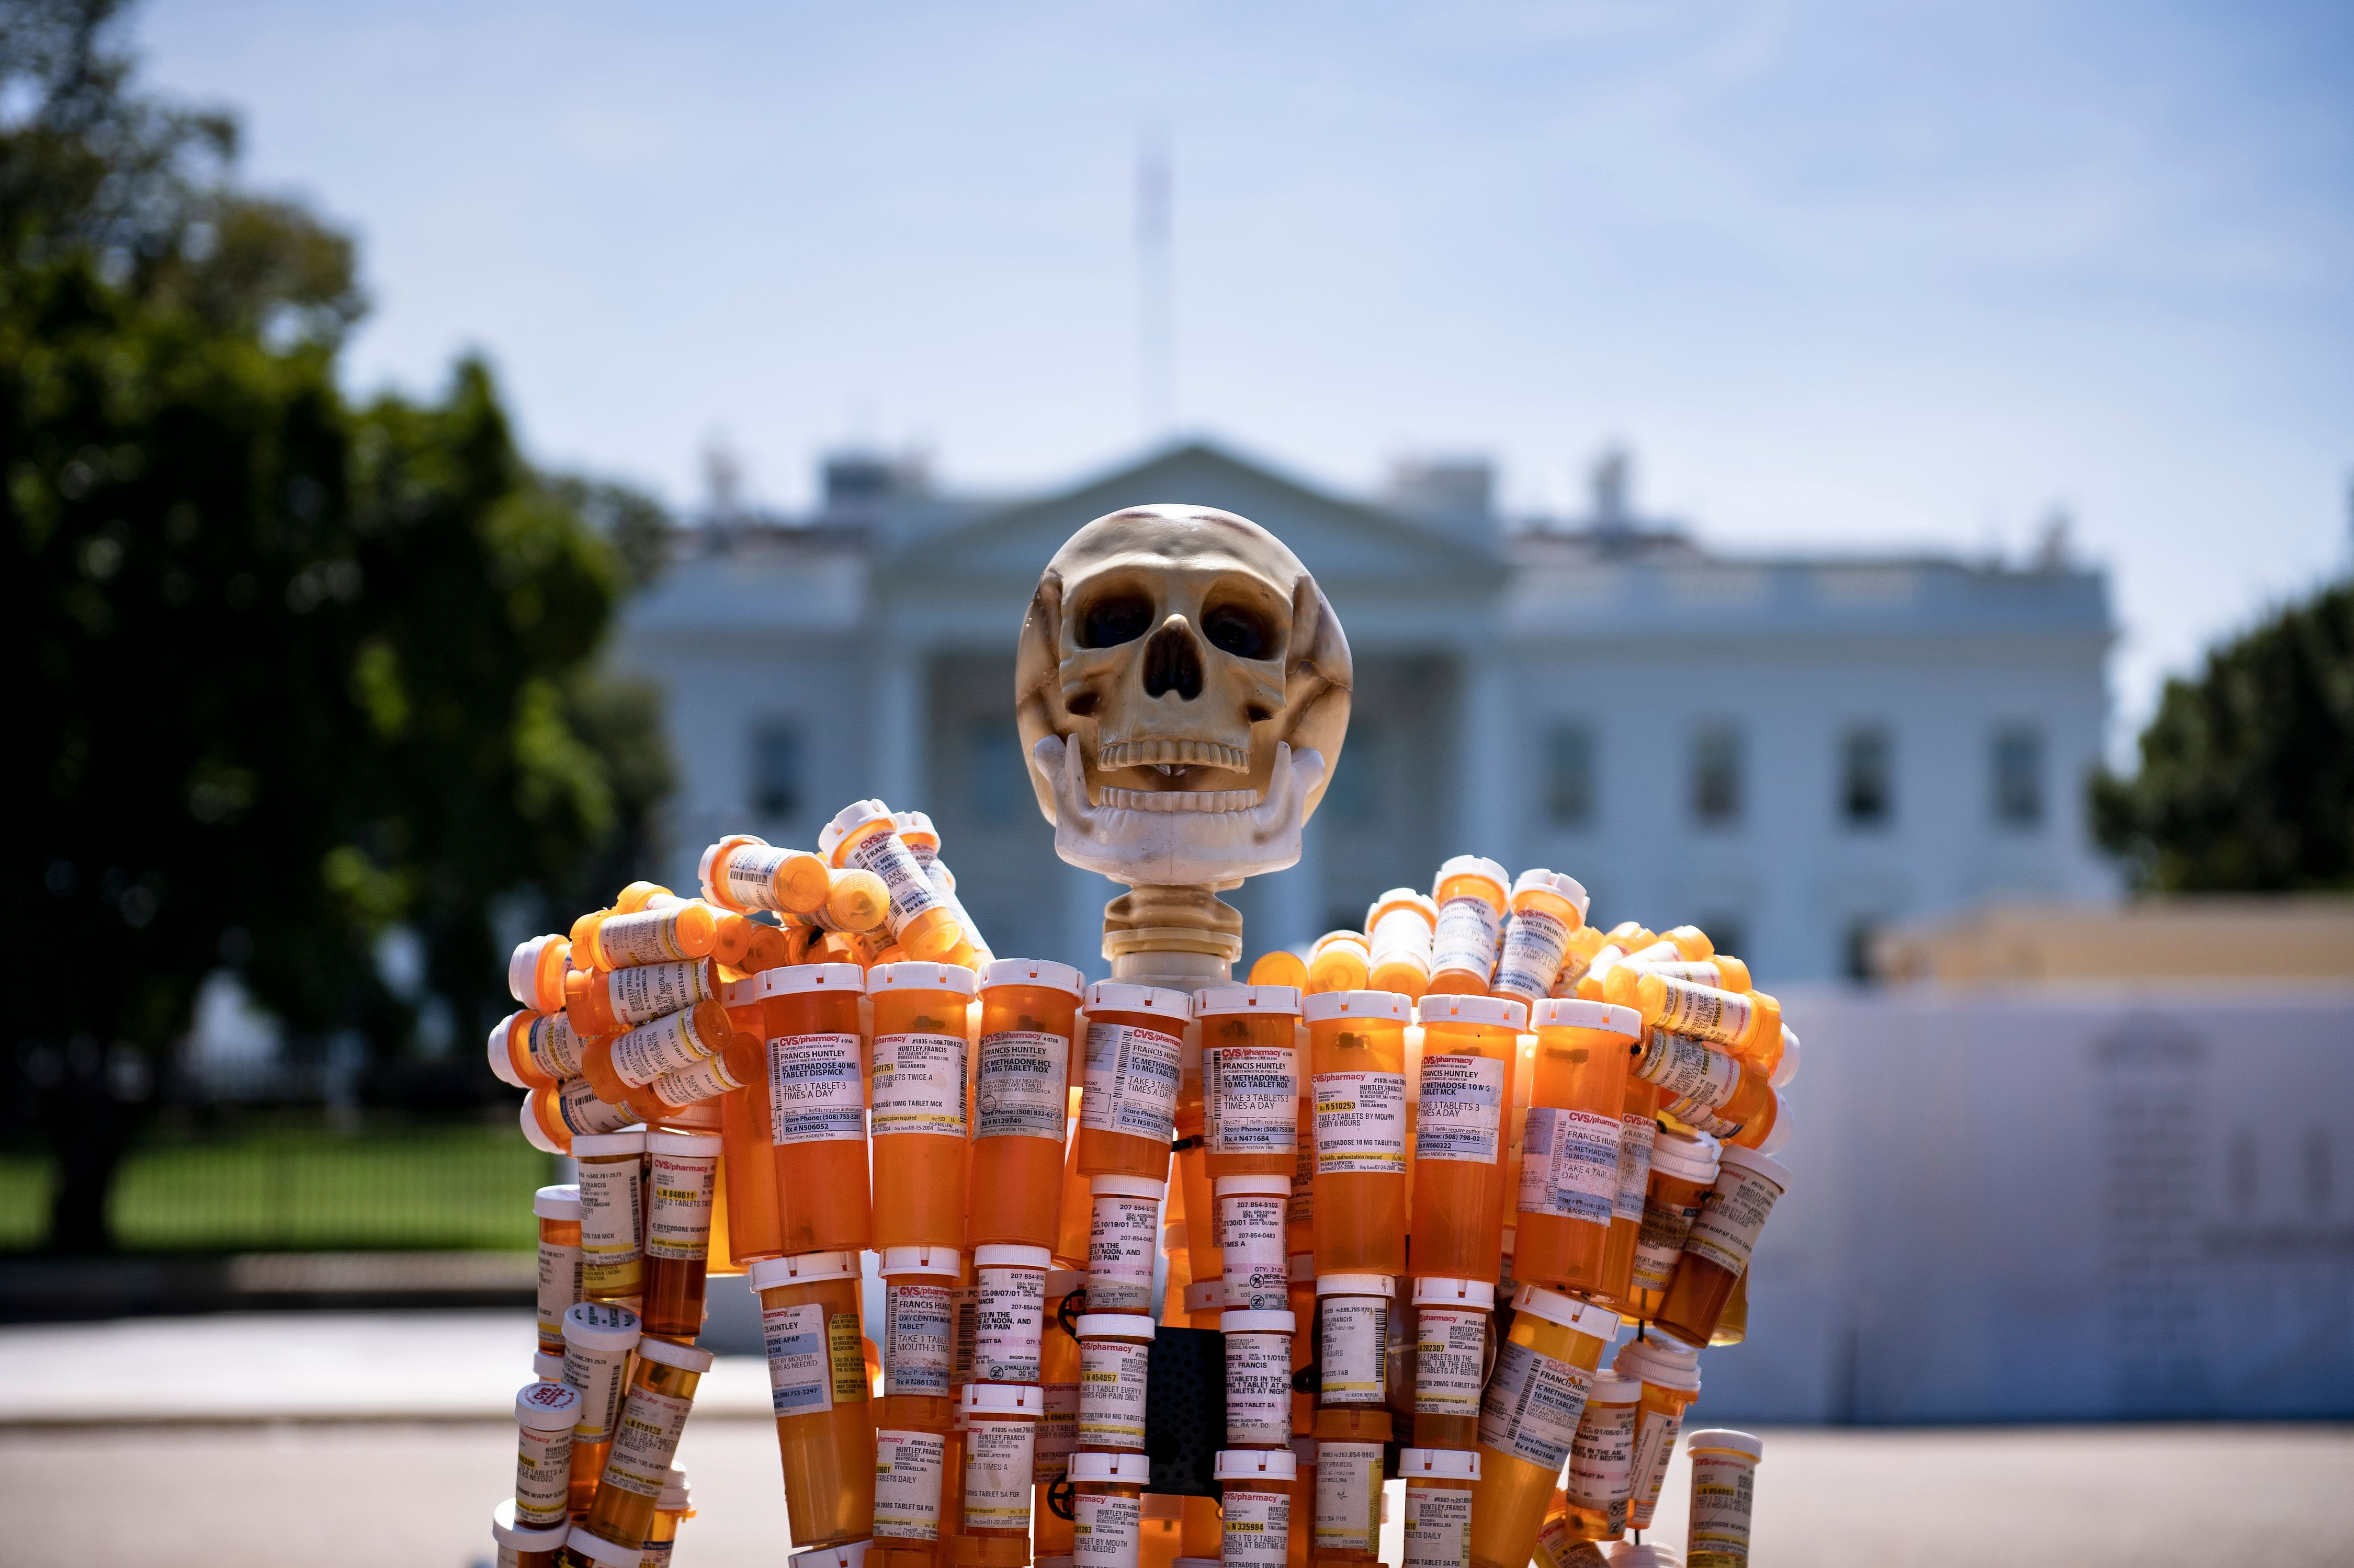 A skeleton made out of OxyContin bottles, displayed at a protest in front of the White House